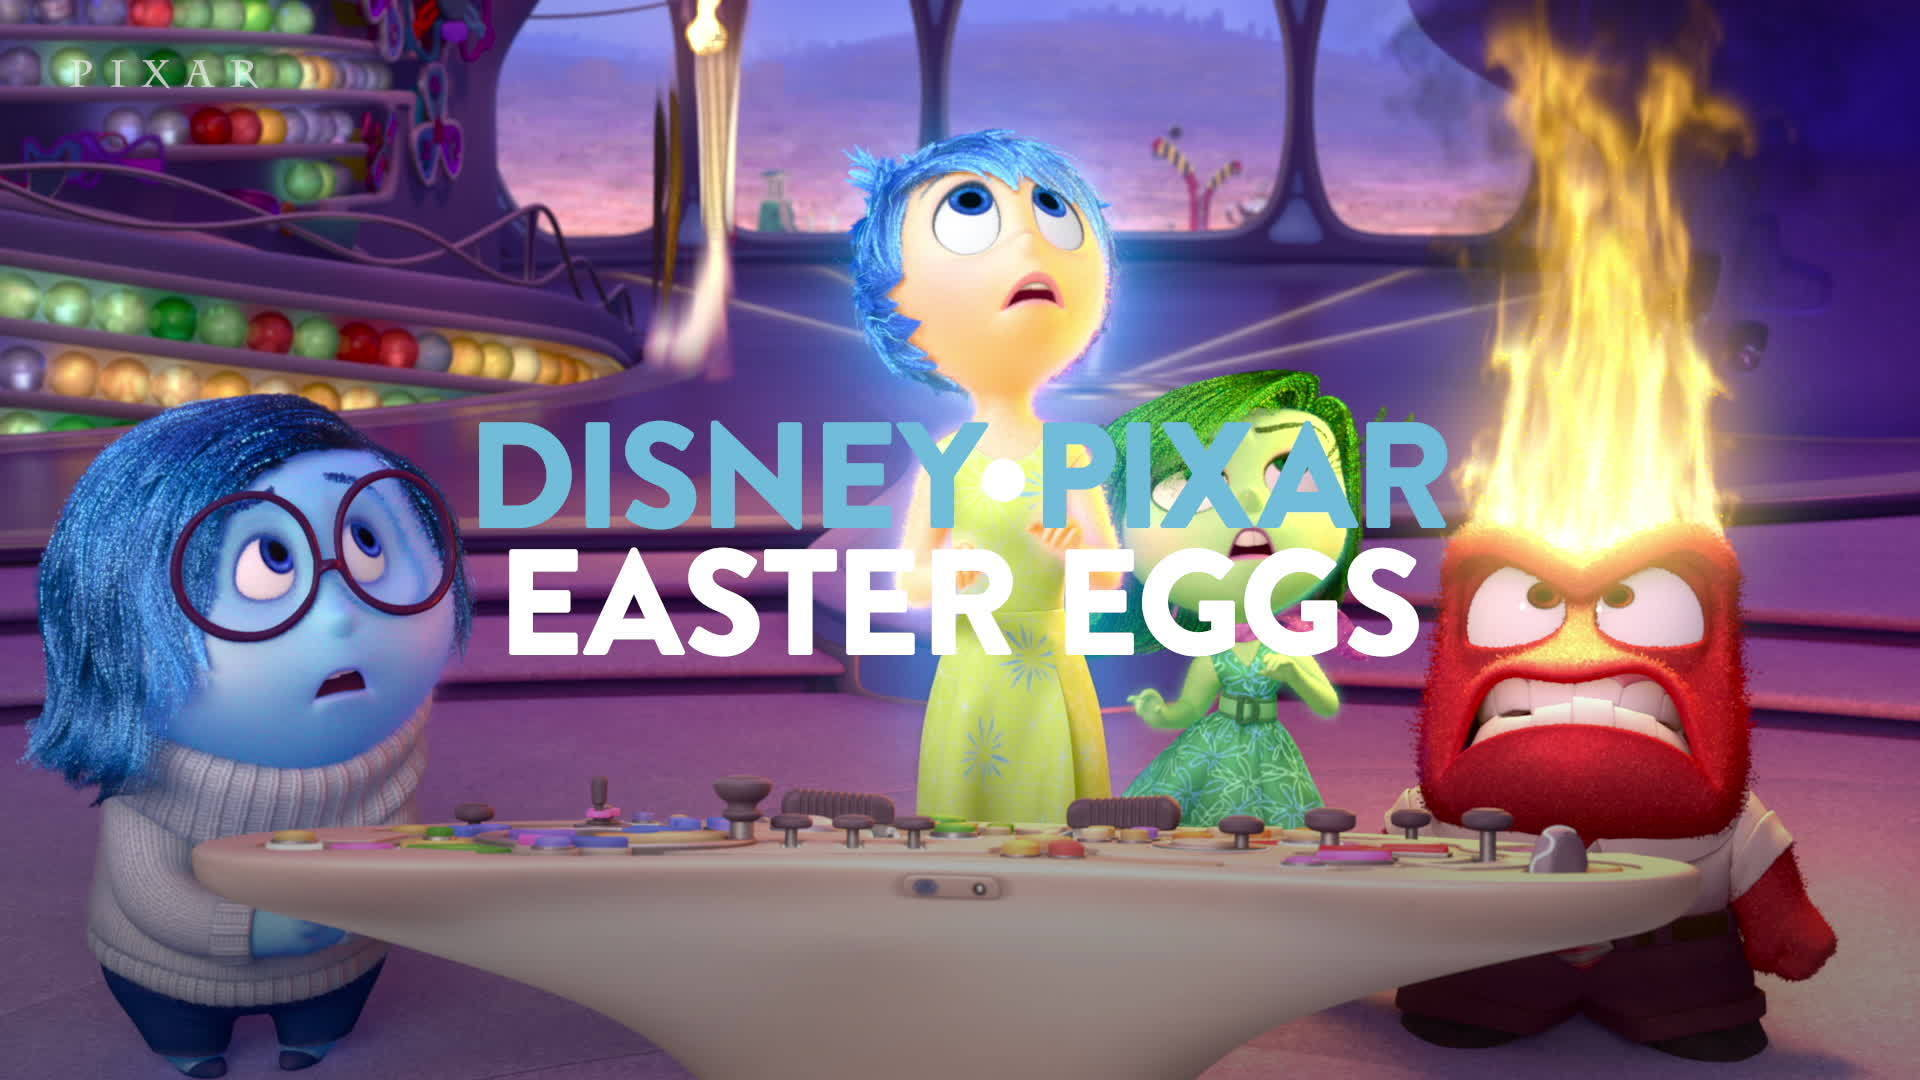 Our Favorite Pixar Hidden Easter Eggs & Secrets Part 1 | Pixar